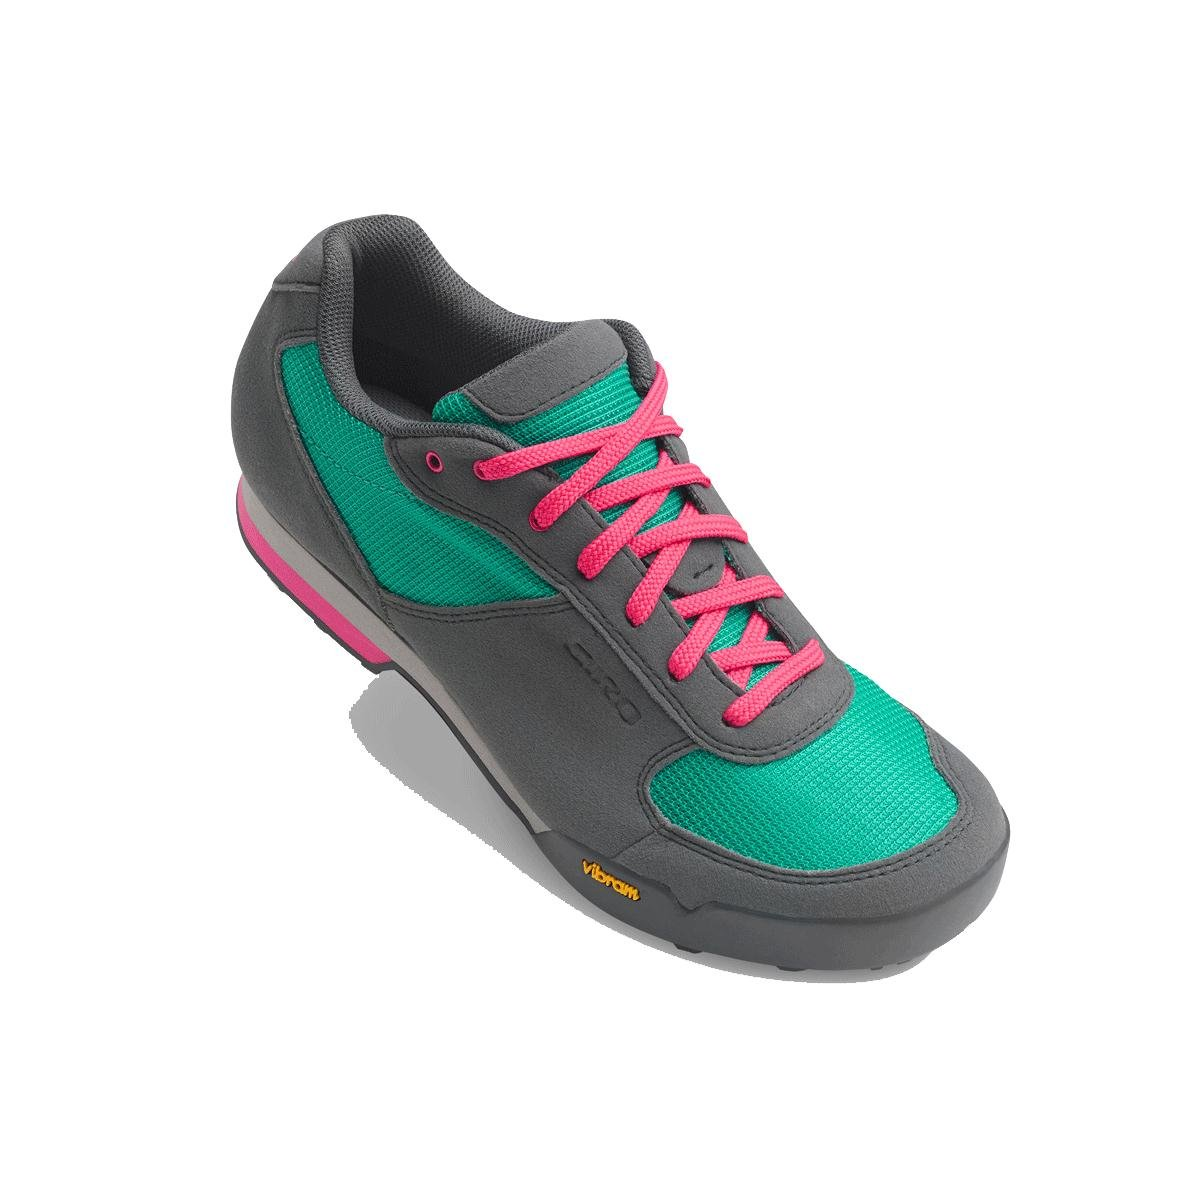 Turquoise Bright Pink Giro Petra VR shoes